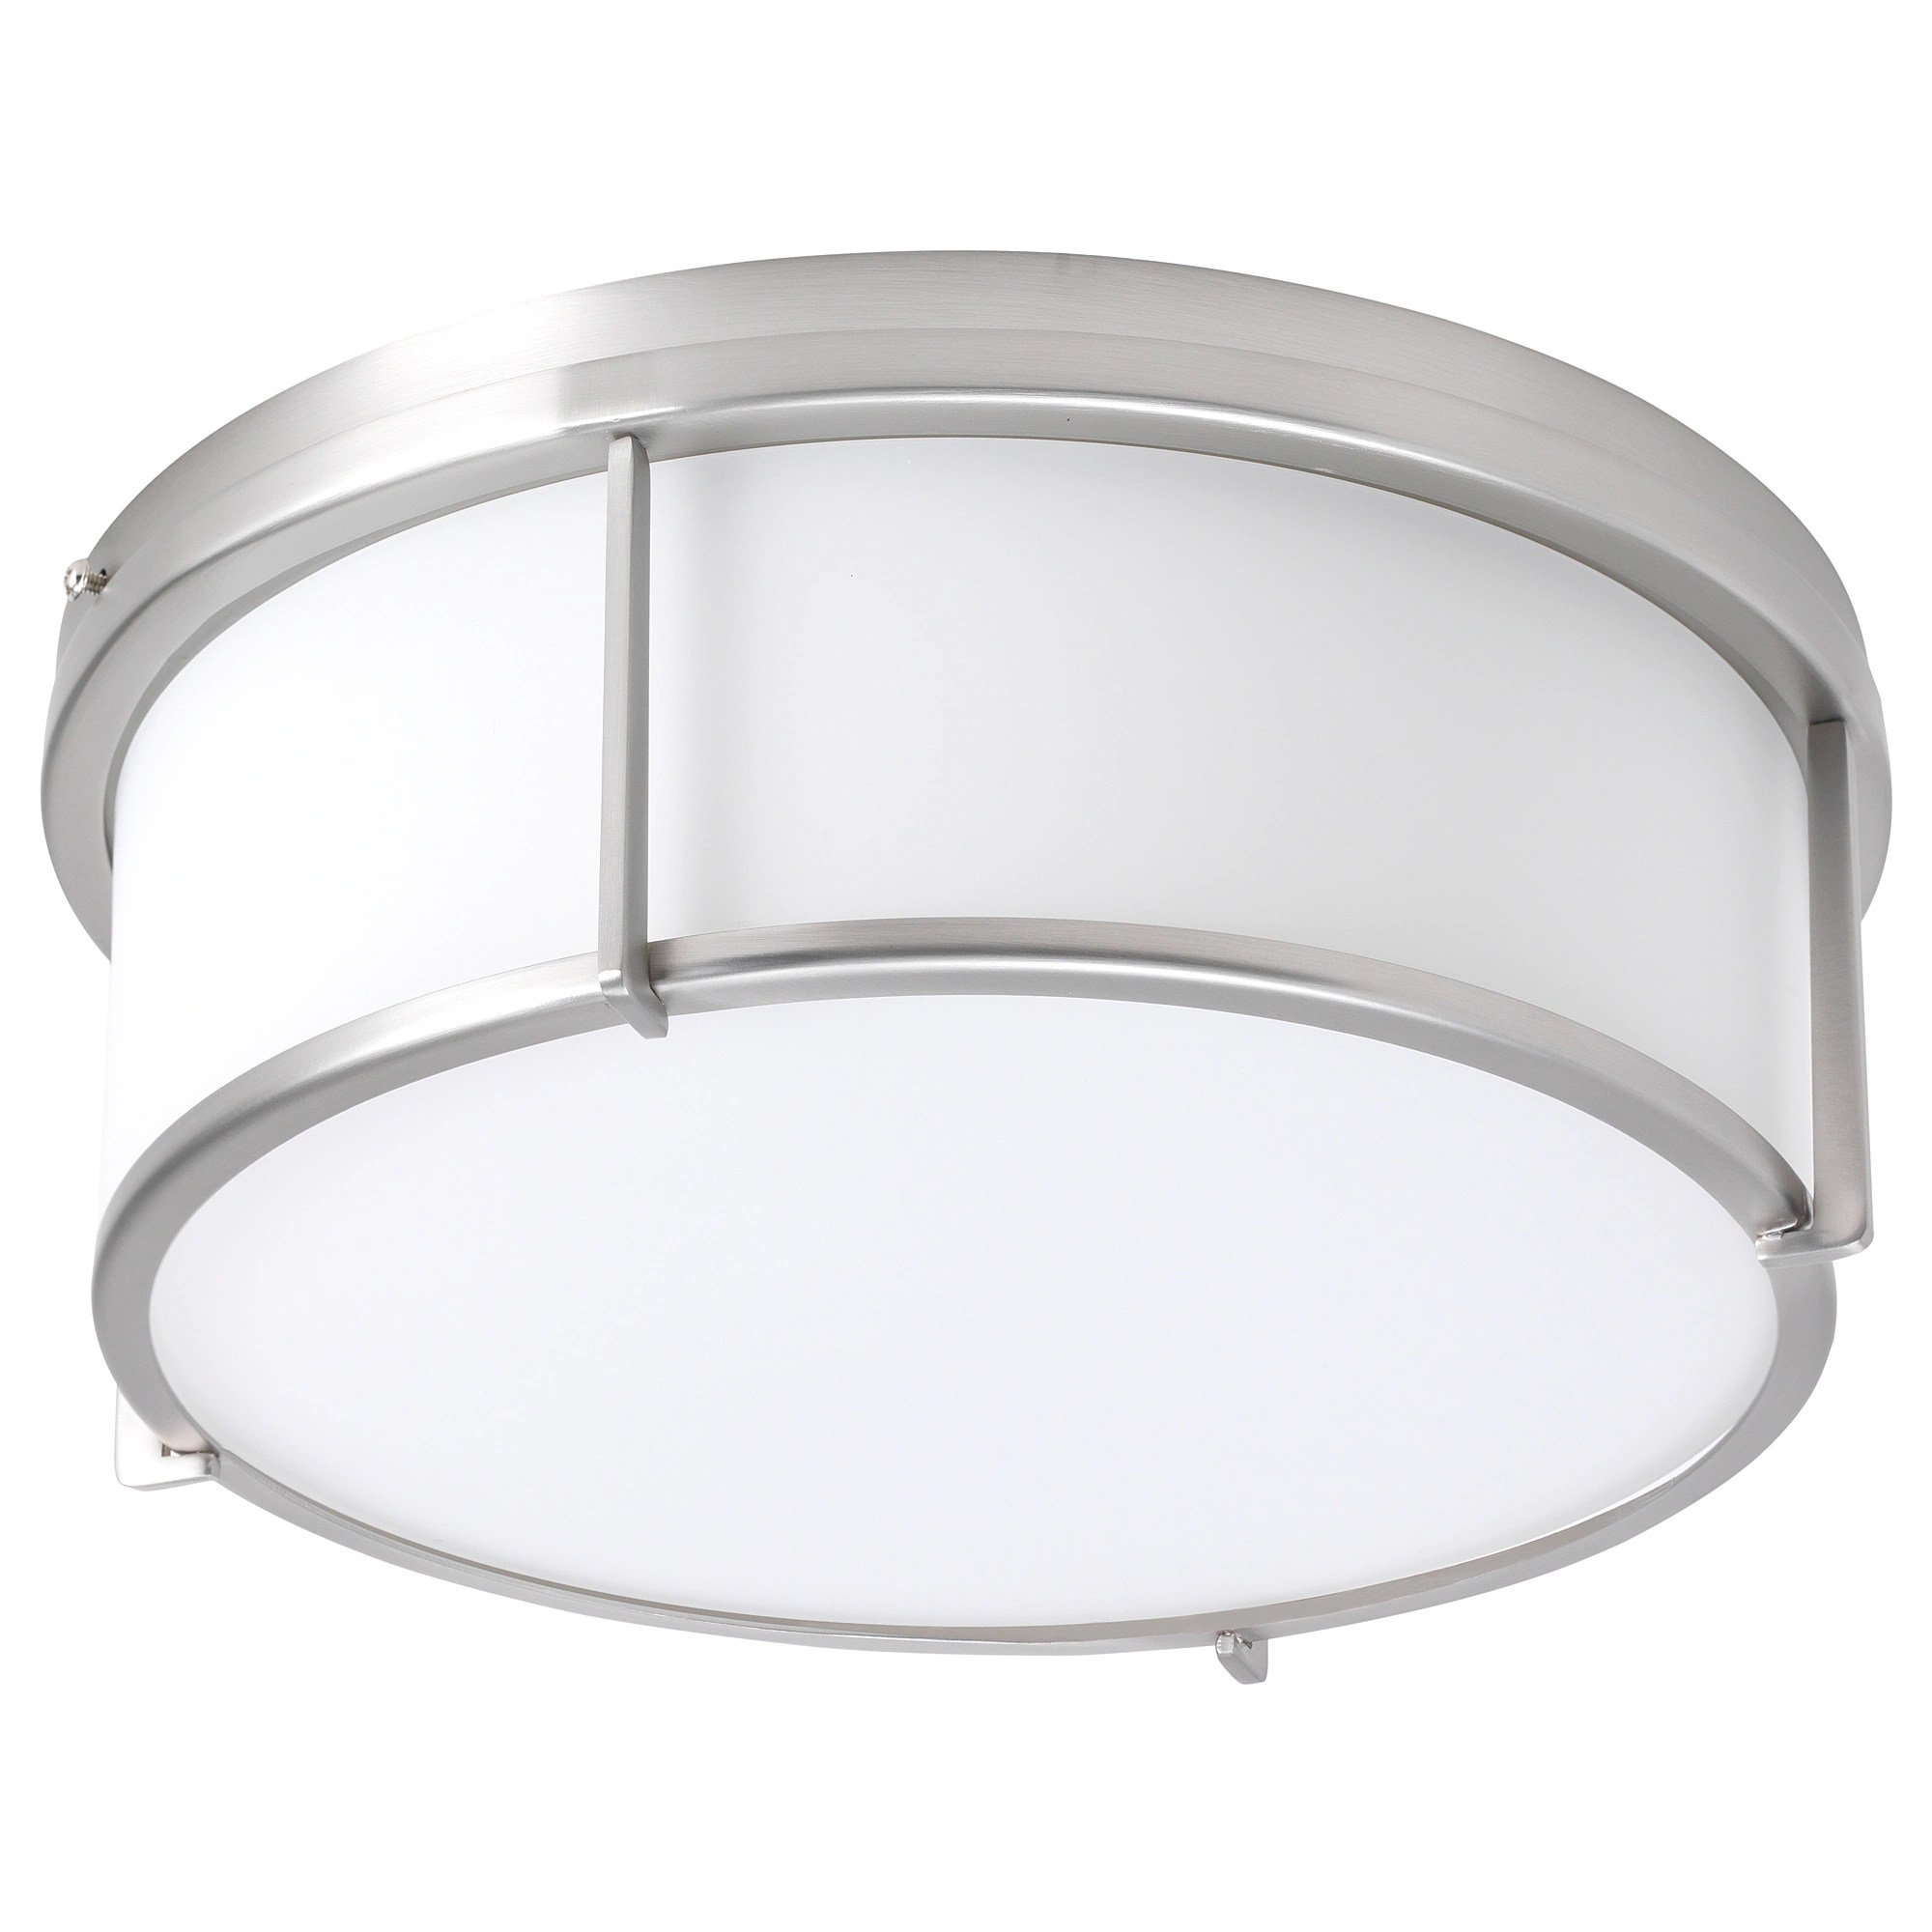 Glass Lamp Ceiling Ceiling Lamp Kattarp Glass Nickel Plated